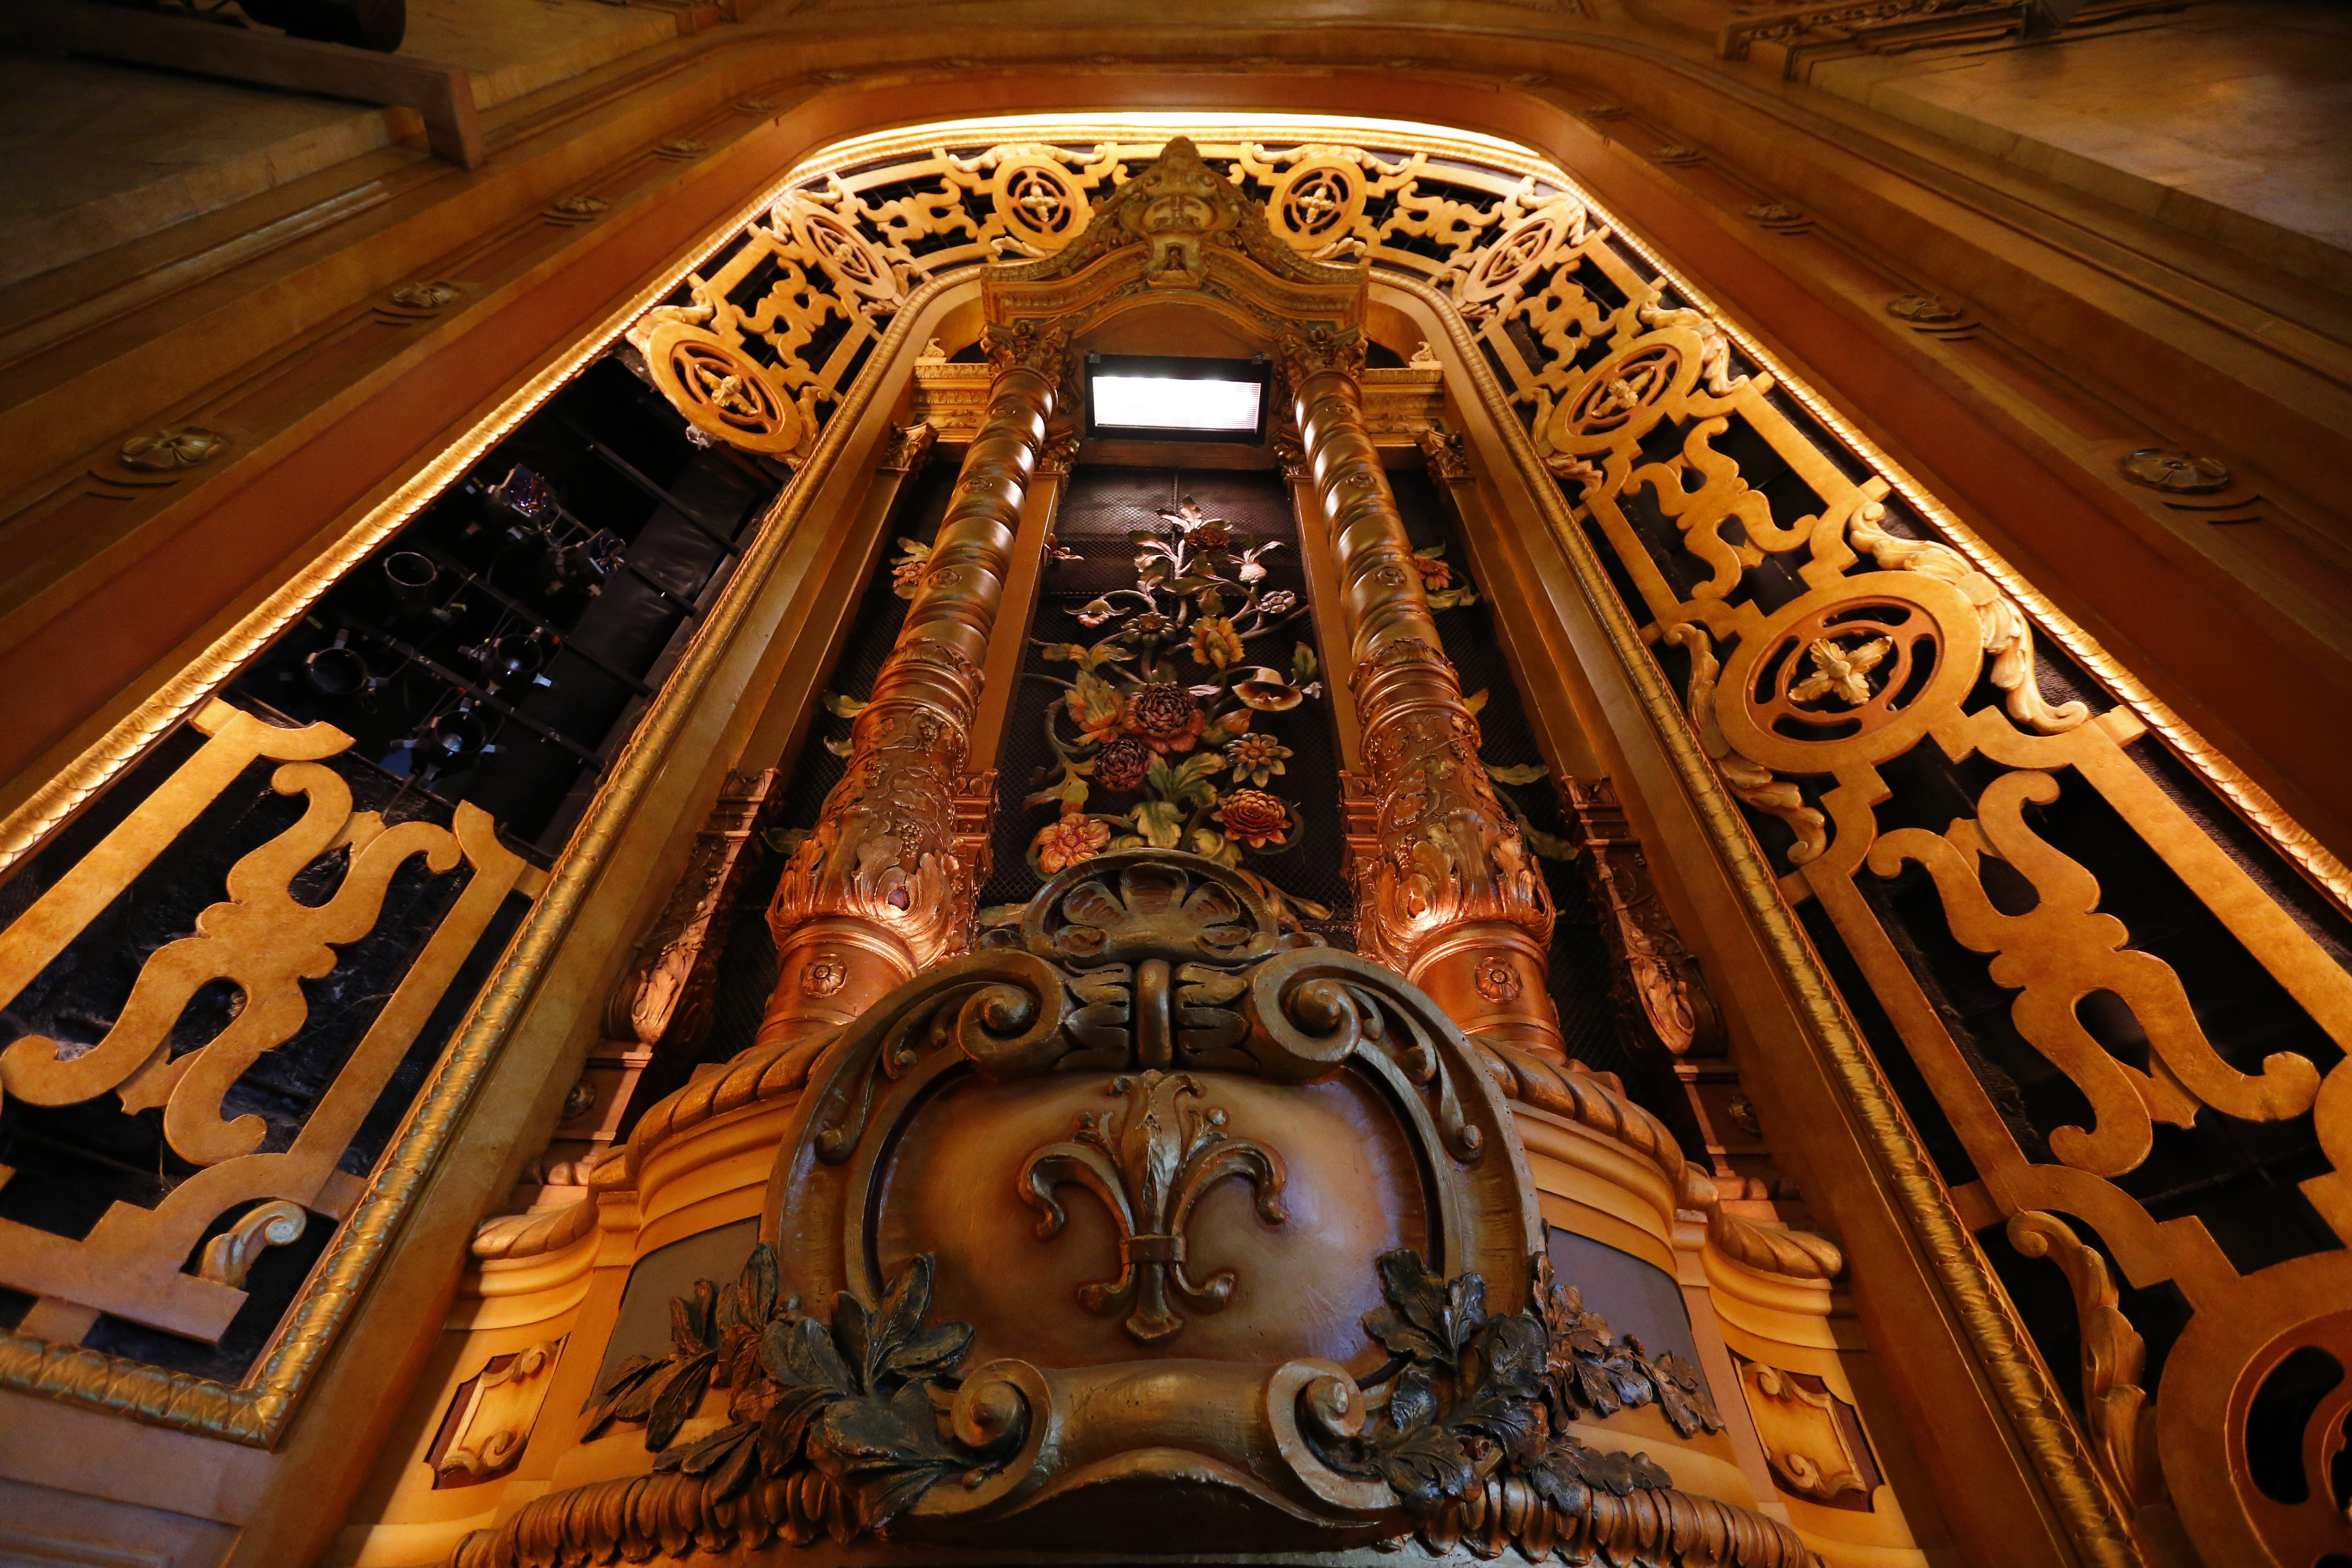 Pictures, A restored private balcony on the side of the stage at the Shea's Buffalo Theatre Tuesday, September 13, 2016. (Mark Mulville/Buffalo News)